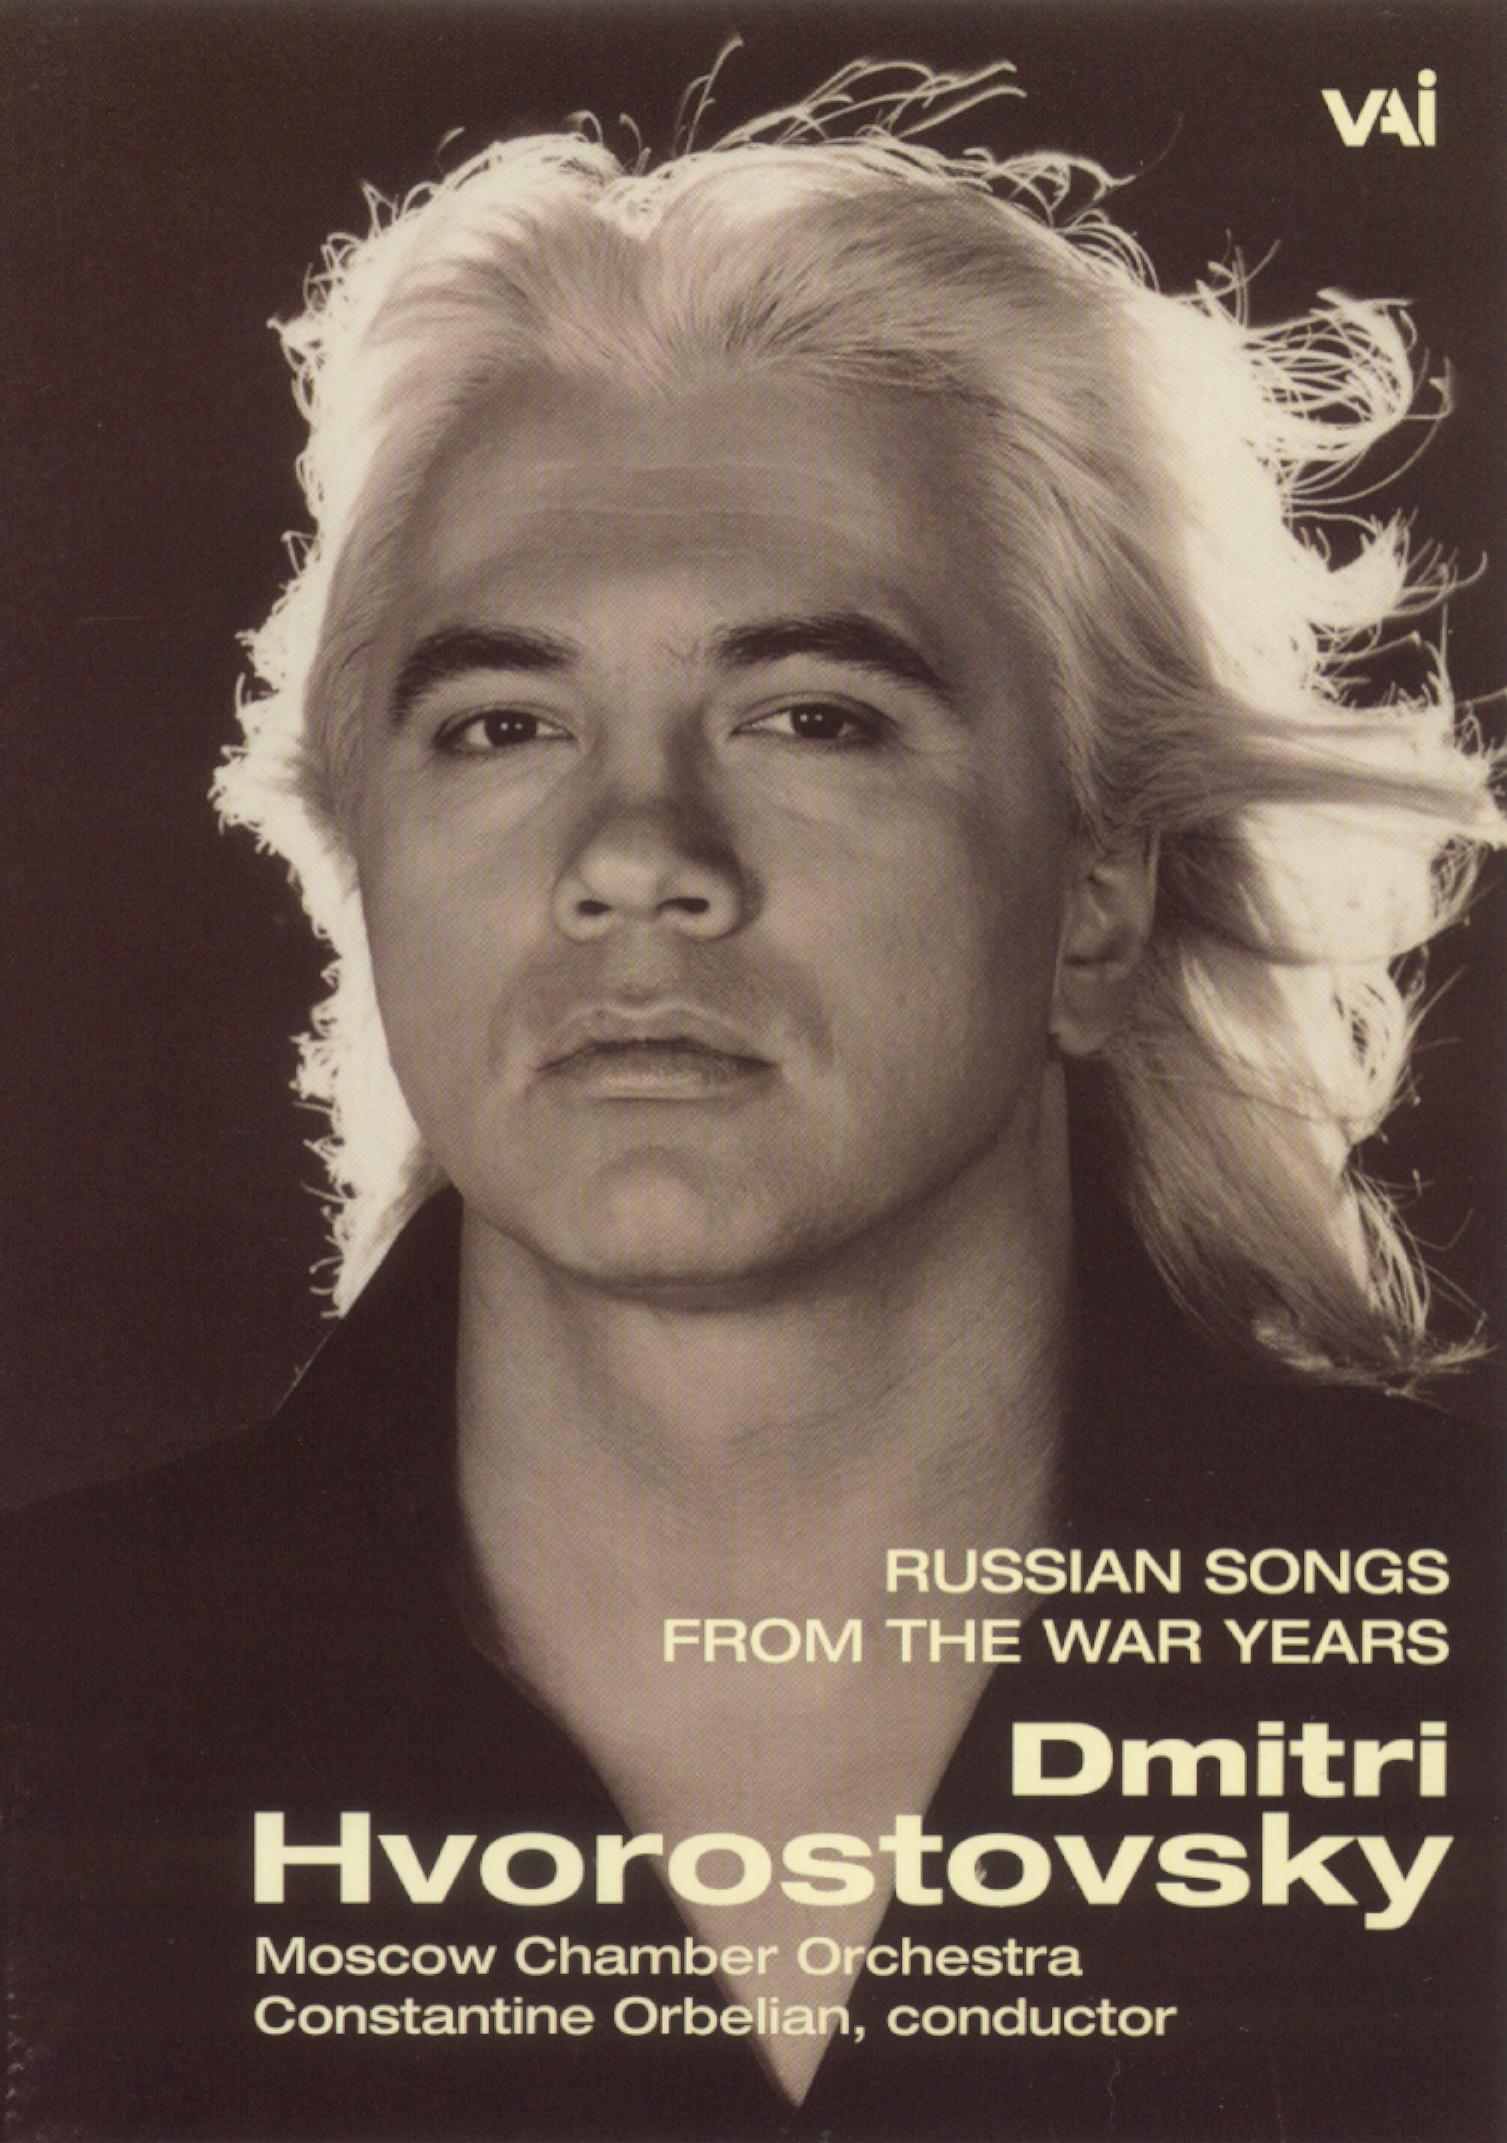 Dmitri Hvorostovsky: Russian Songs From the War Years